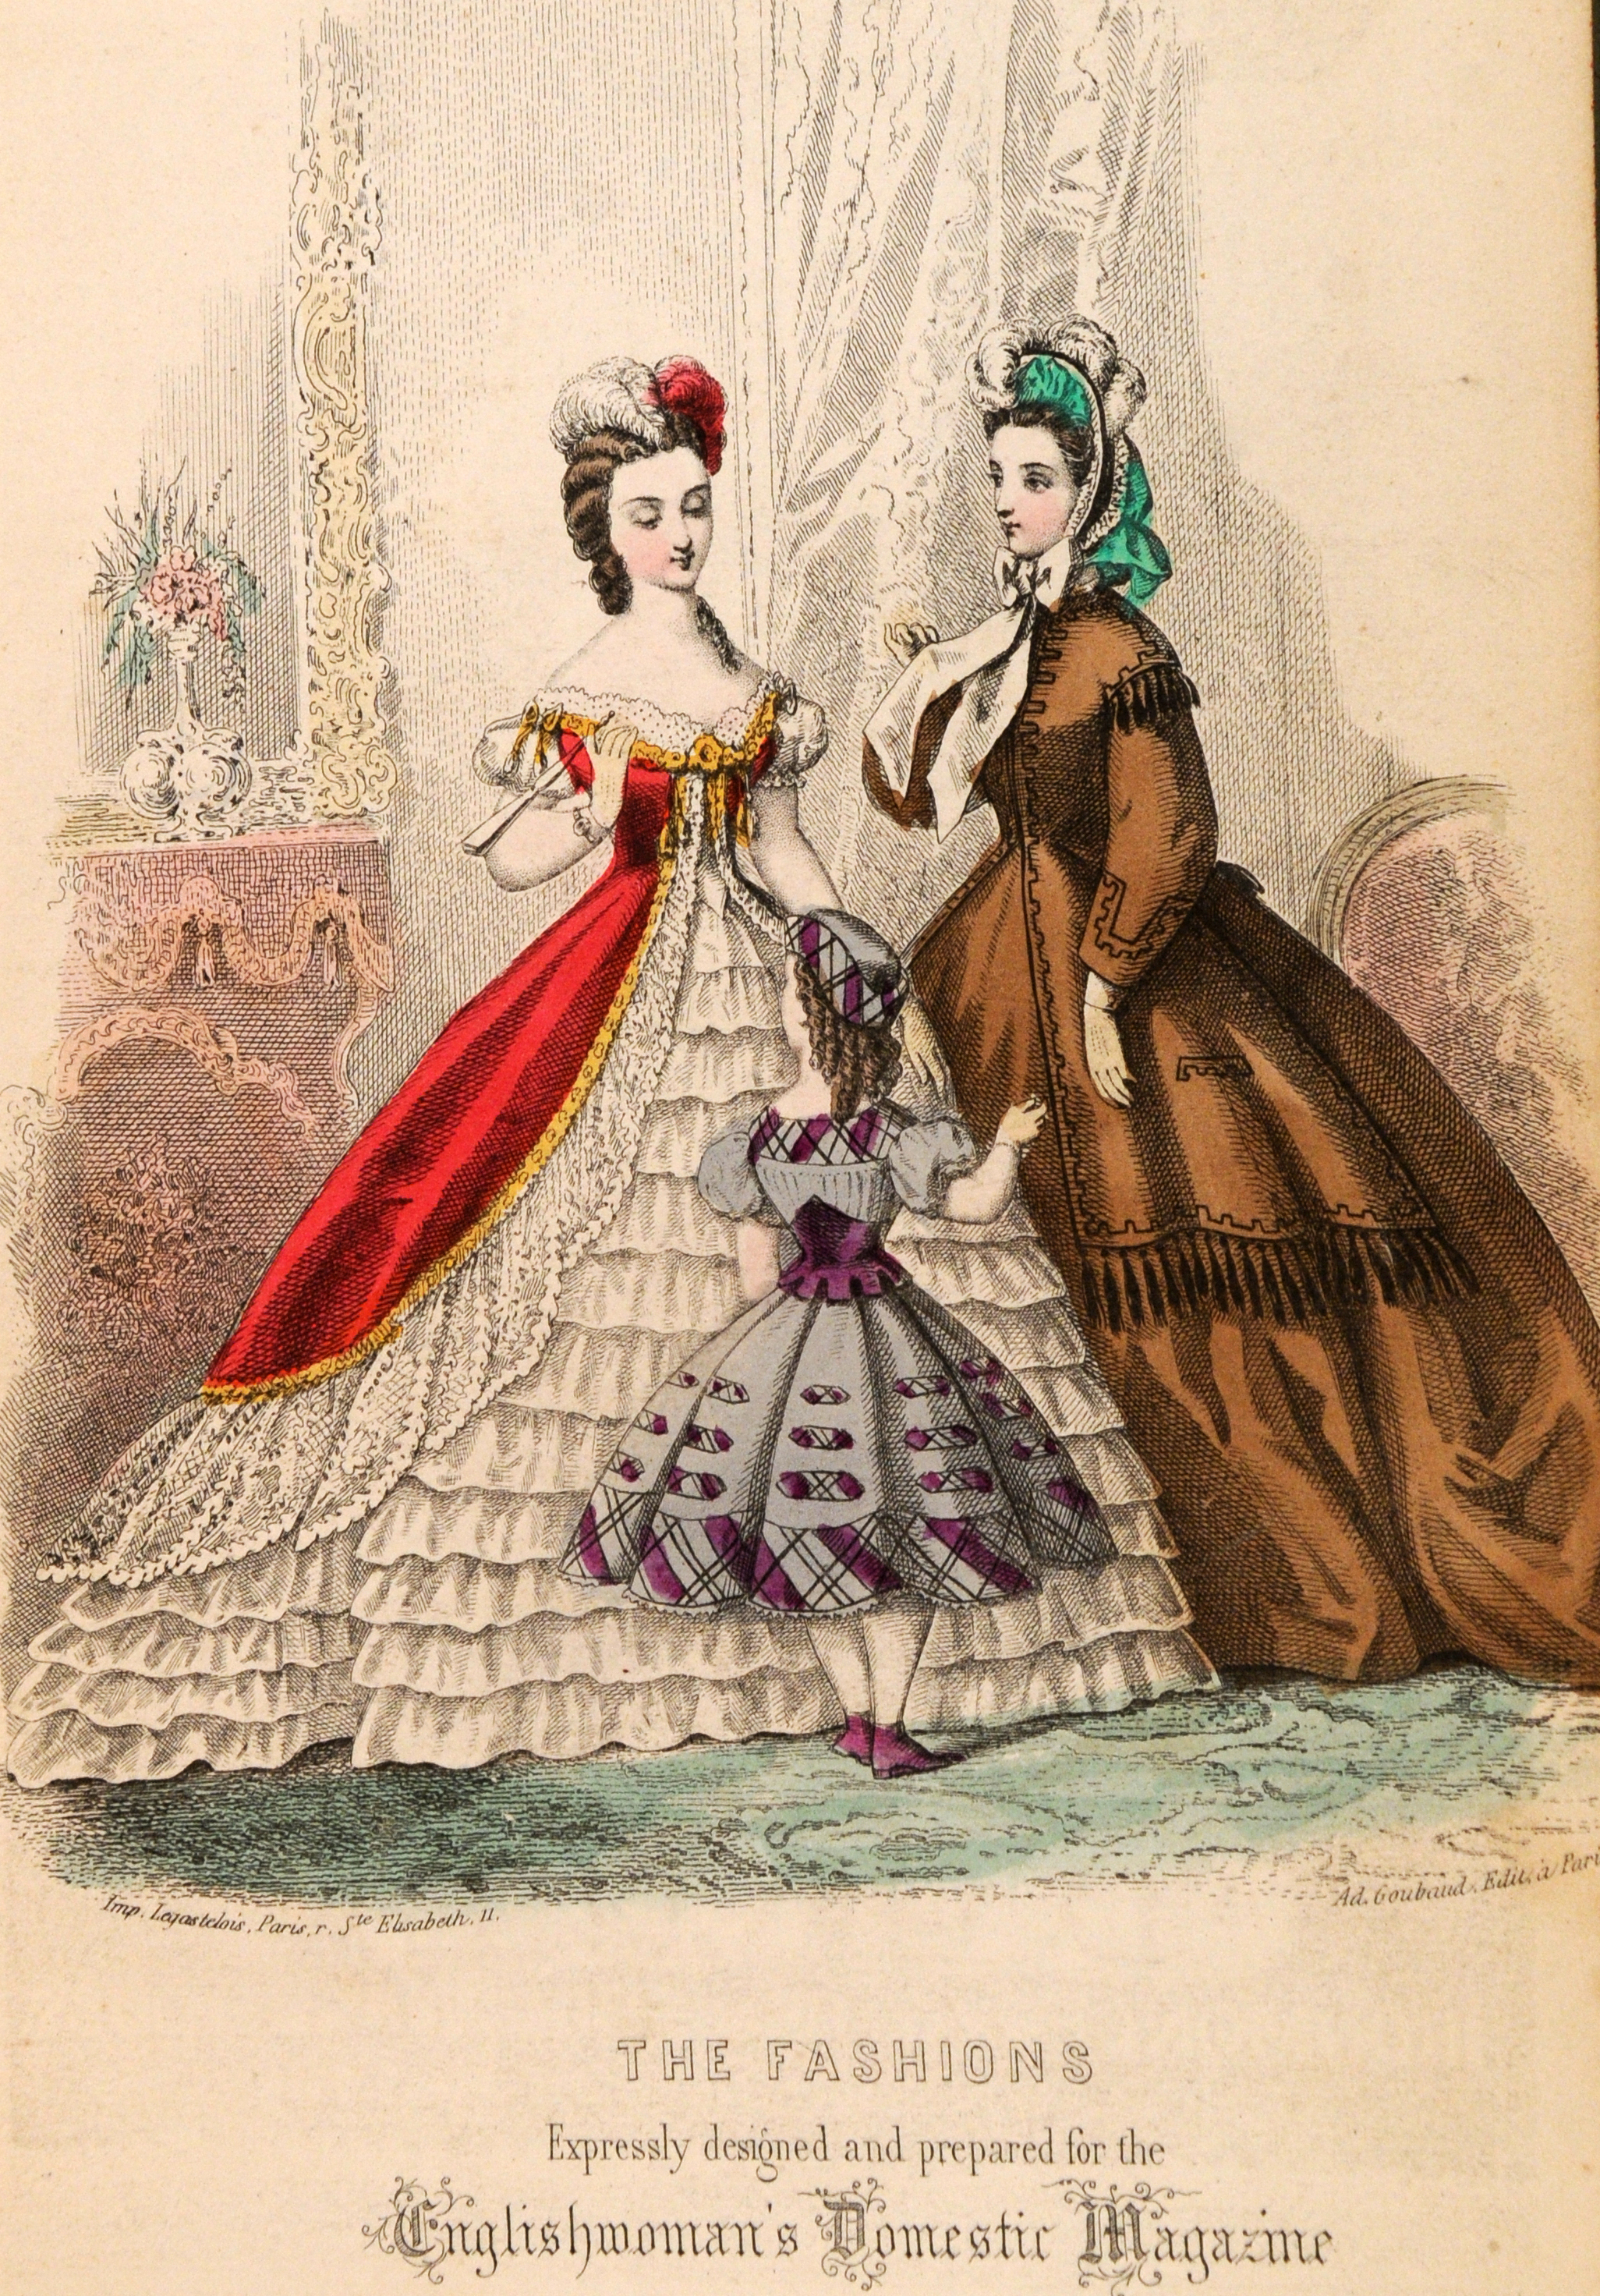 Englishwoman's Domestic Magazine fashions (December 1863) Image: Gold Museum Collection (70.5727)